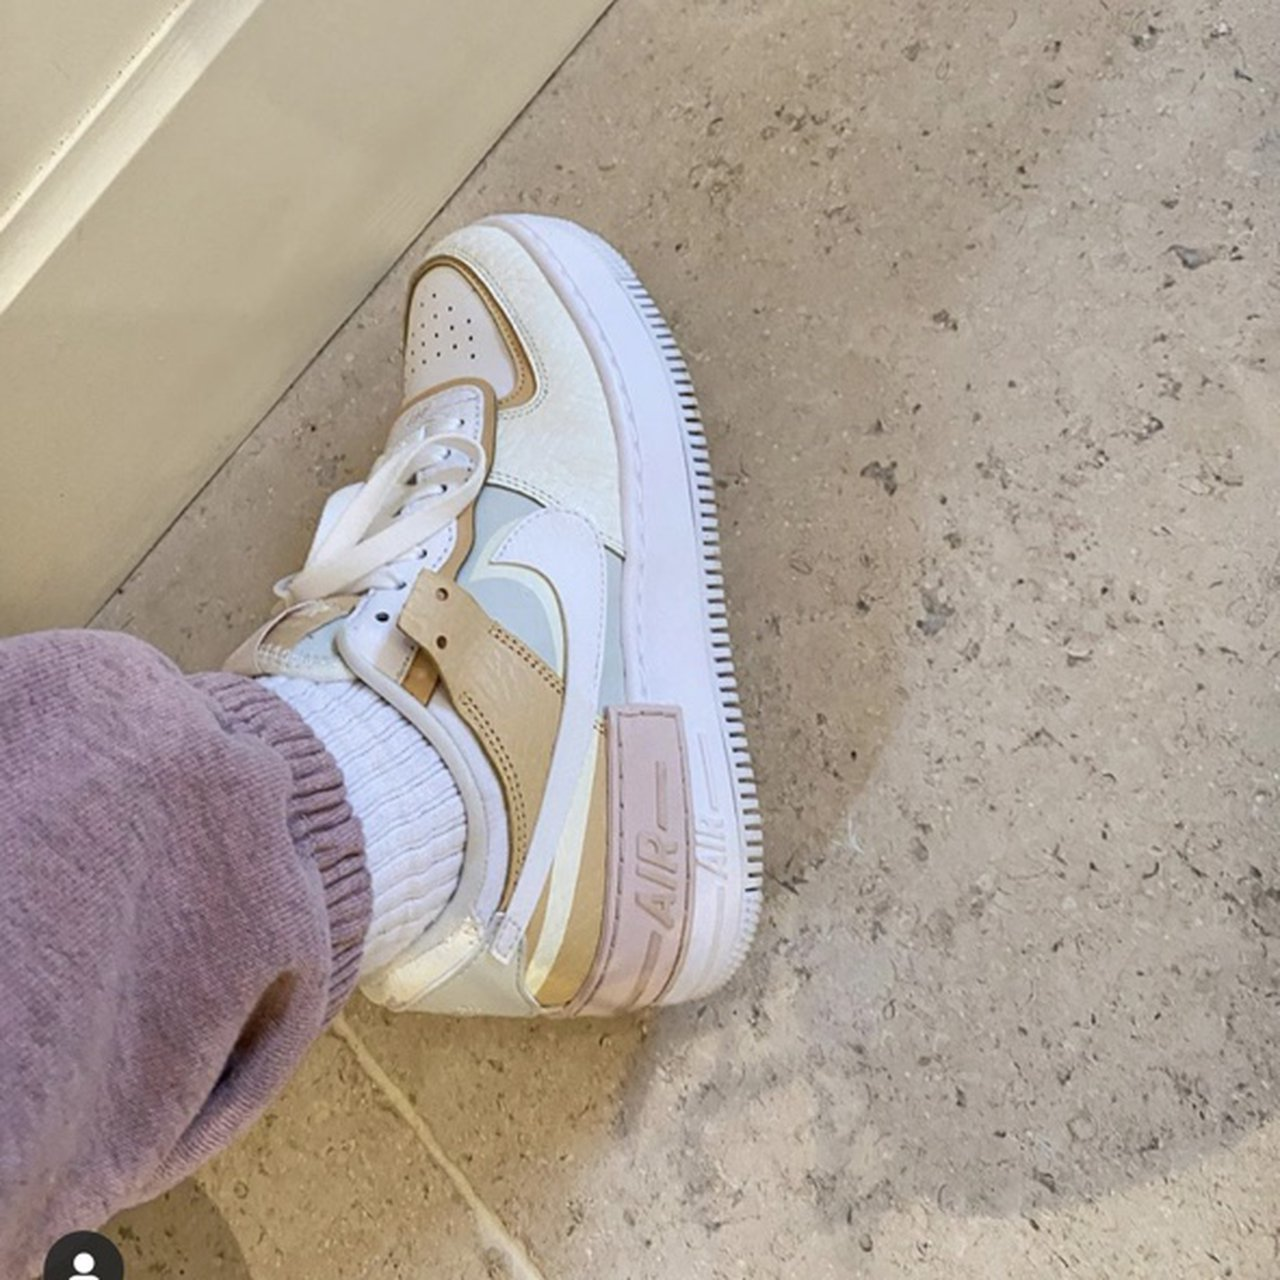 Brand New In Box Nike Air Force 1 Shadow Tonal Cream Depop Nike air force 1 shadow pastel summit white ghost trainers new various sizes. brand new in box nike air force 1